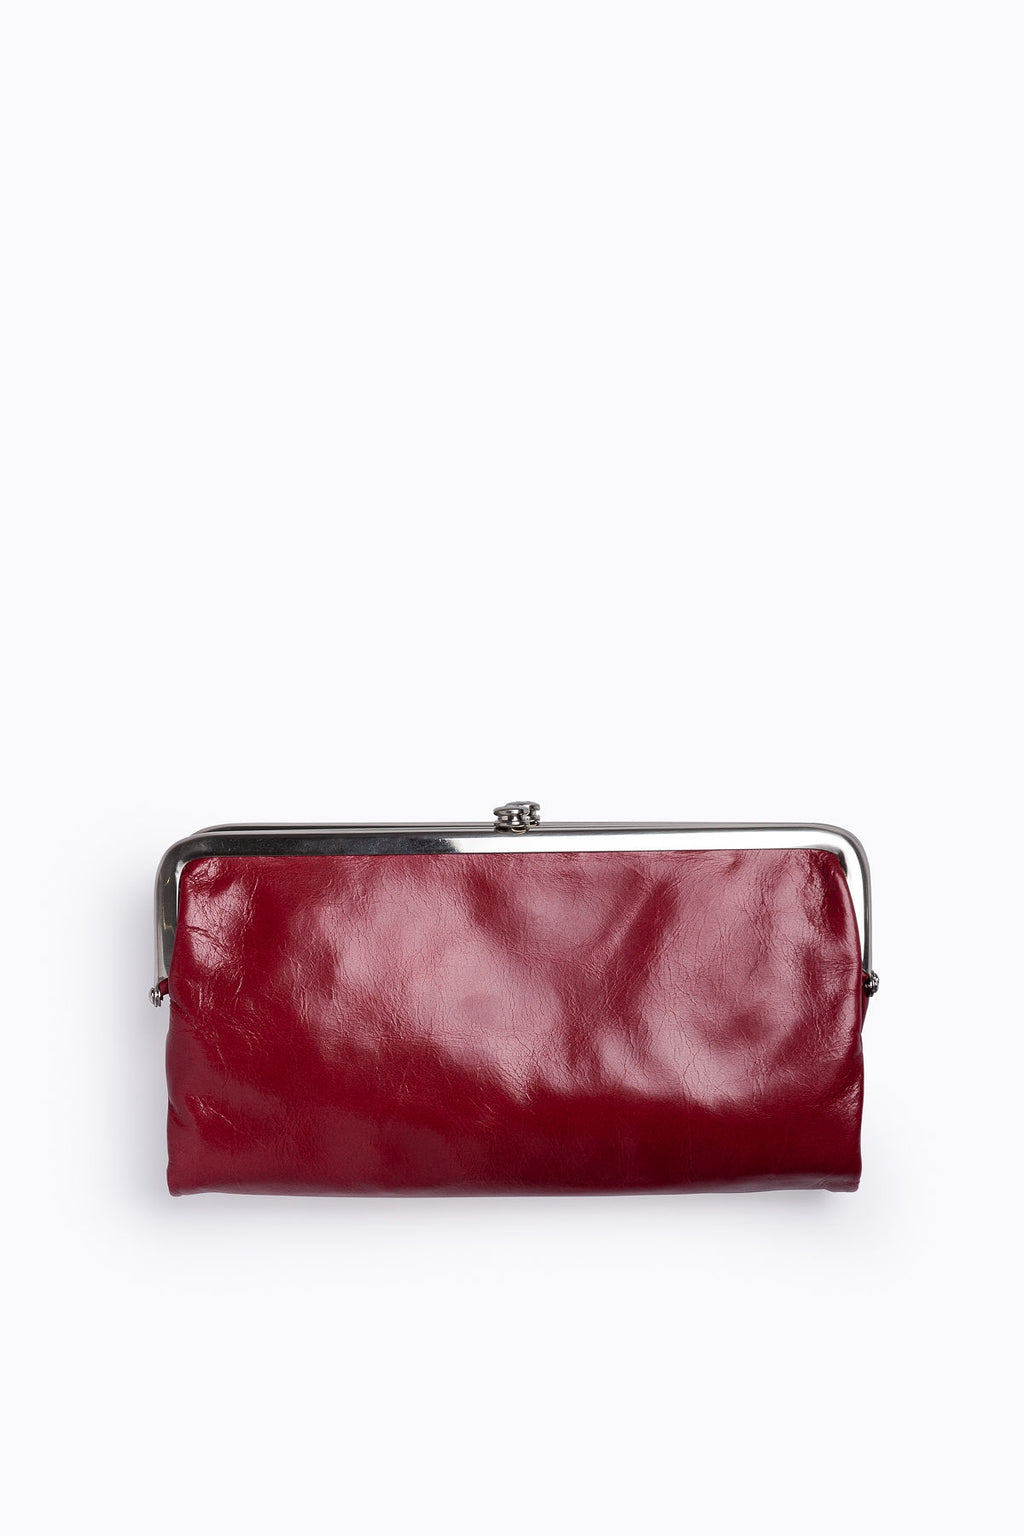 Hobo: Lauren Wallet in Vintage Loganberry